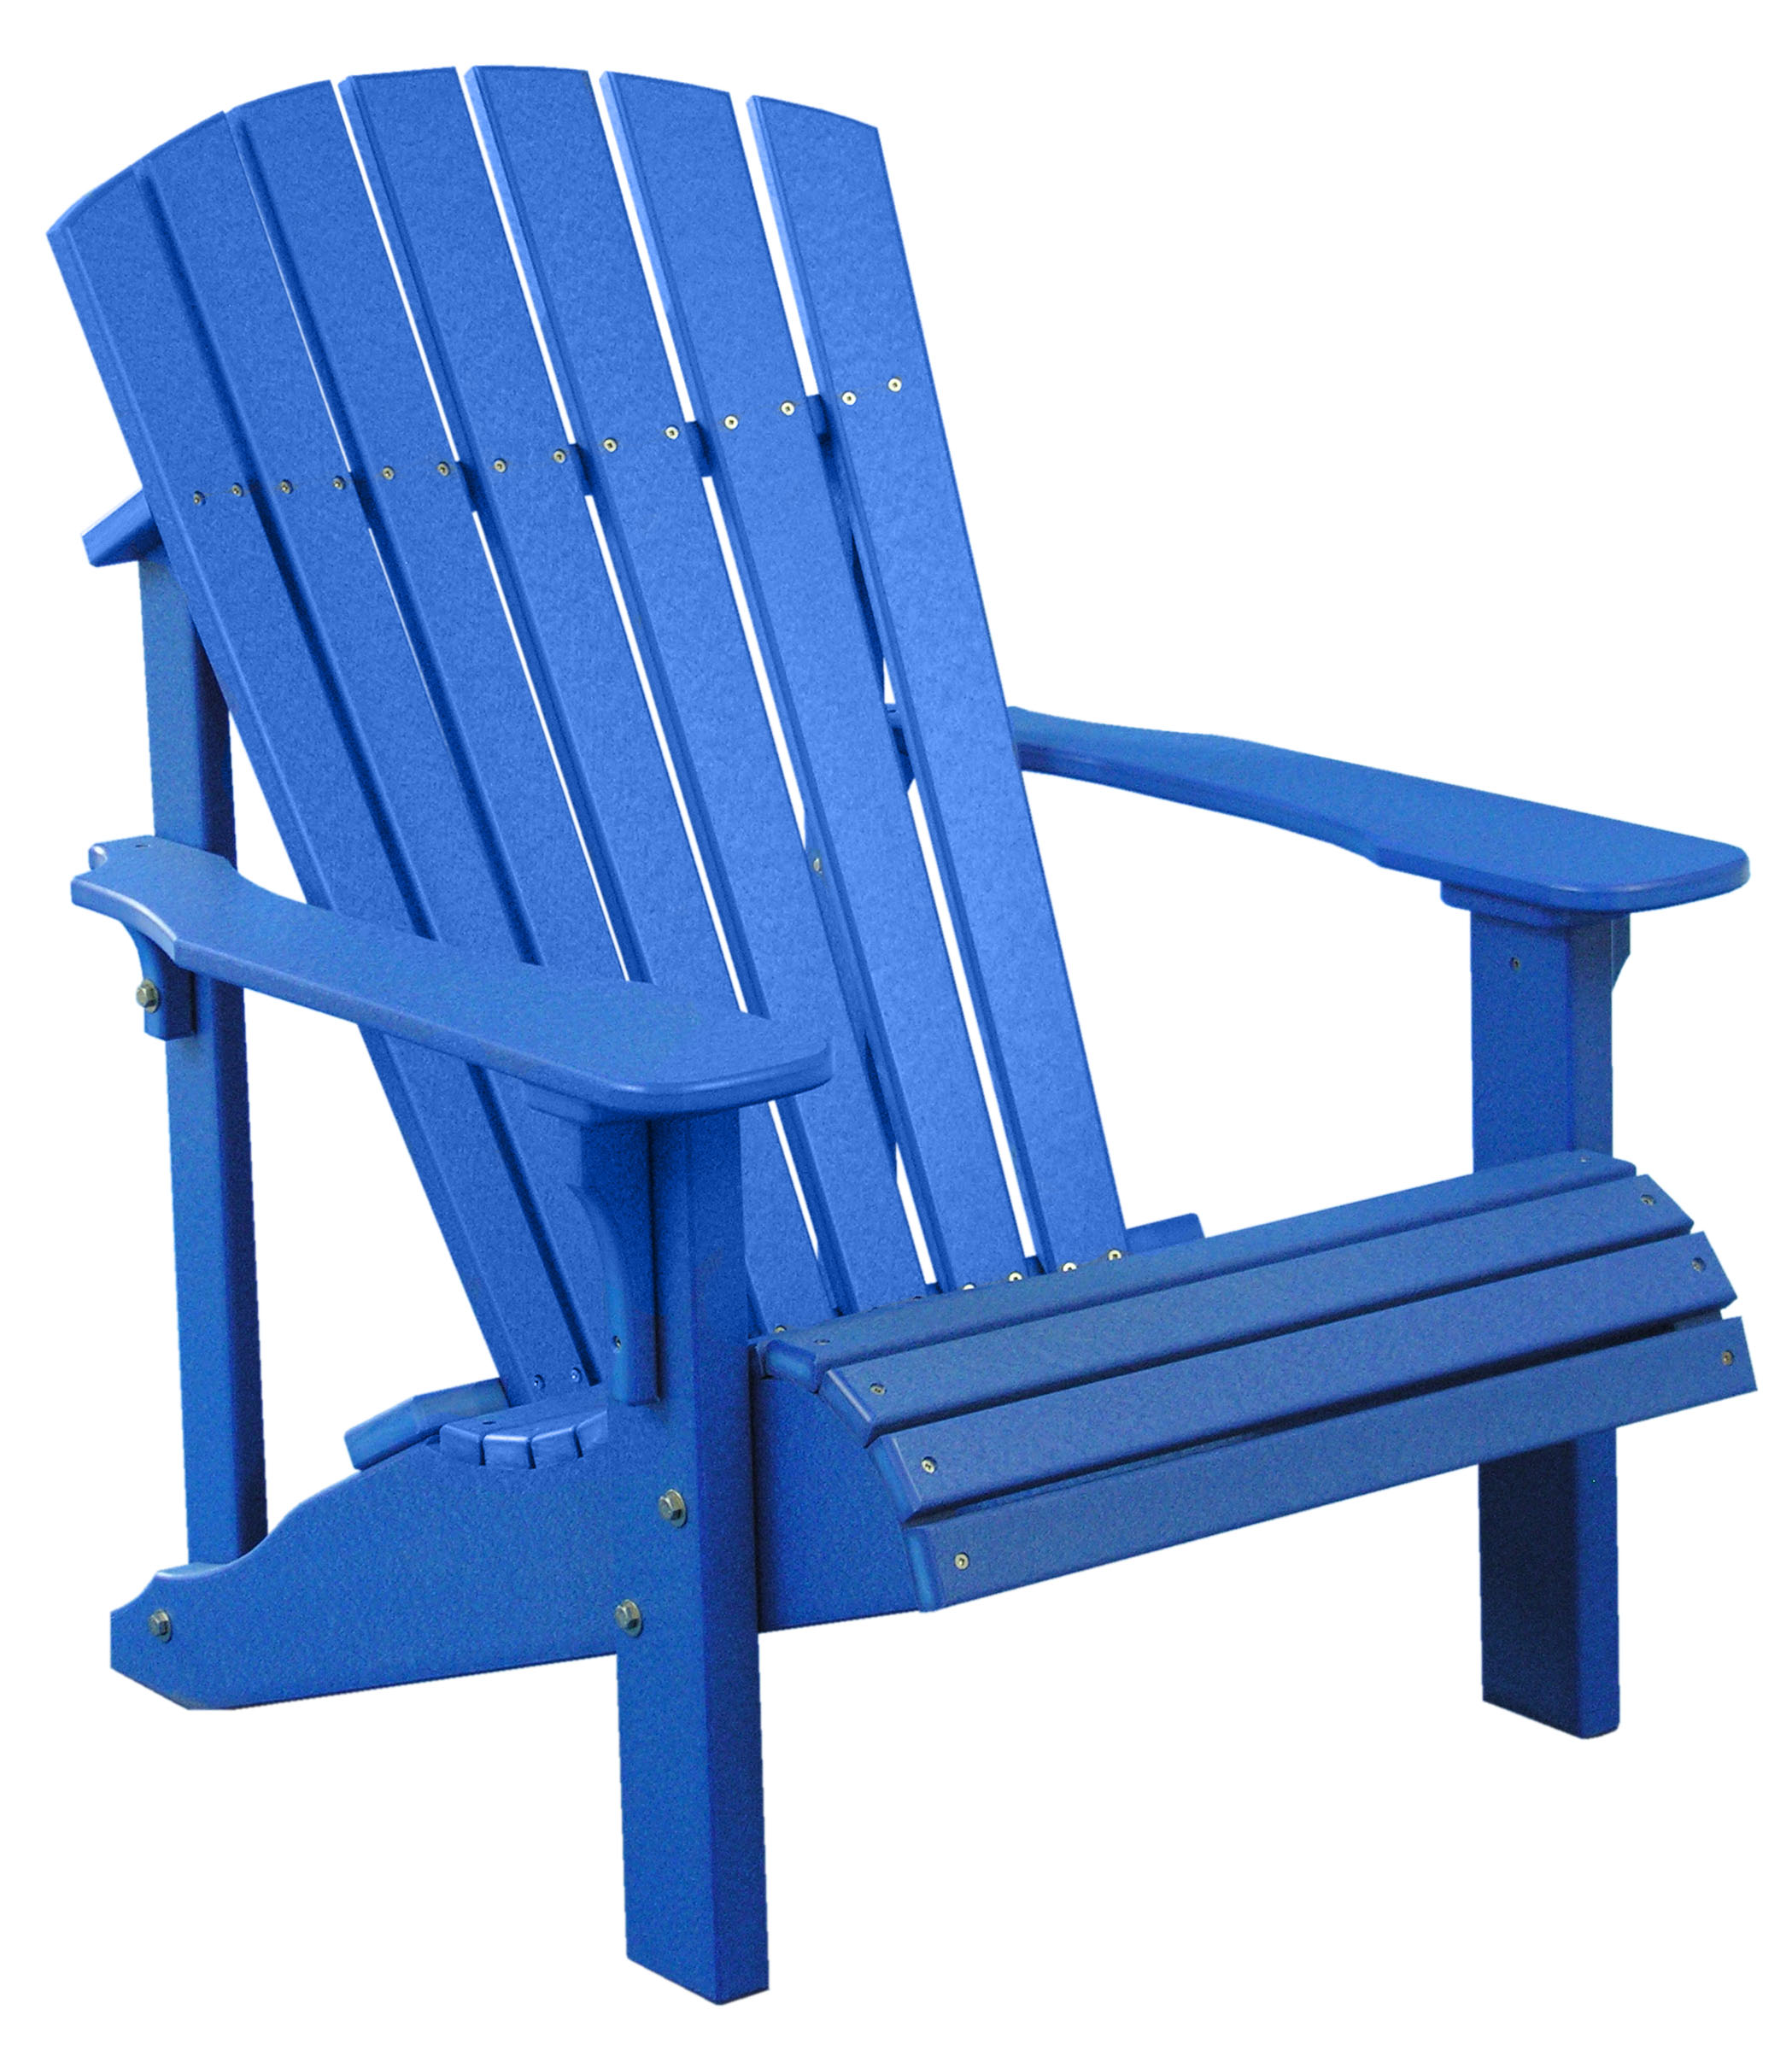 Deluxe Adirondack Chair All Blue – Tri State Outdoor Products LLC